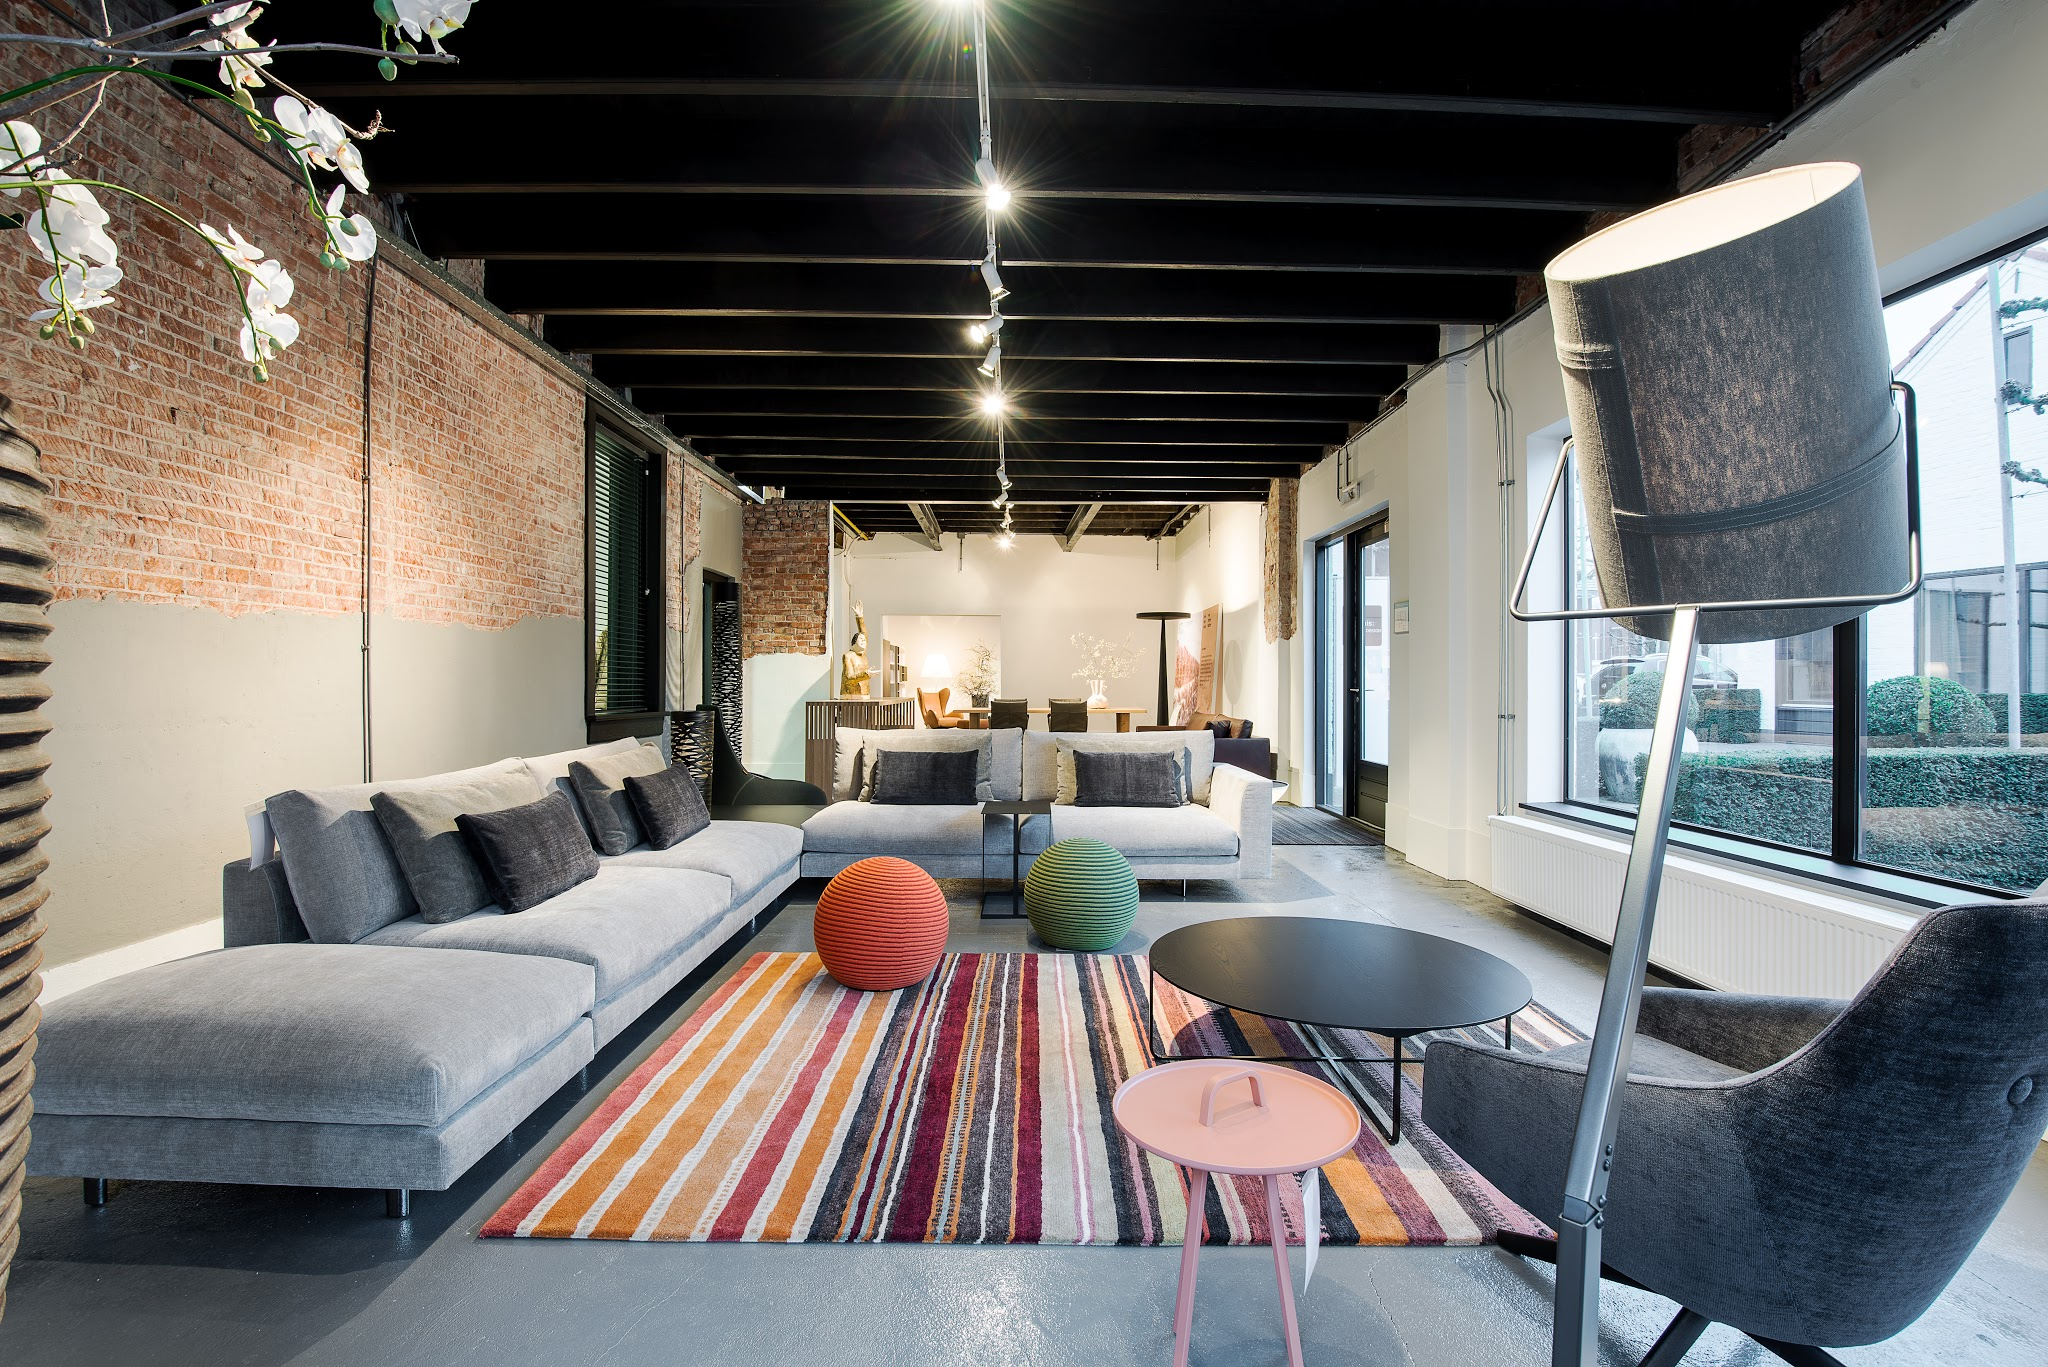 Slijkhuis interieur design het continent for Design interieur